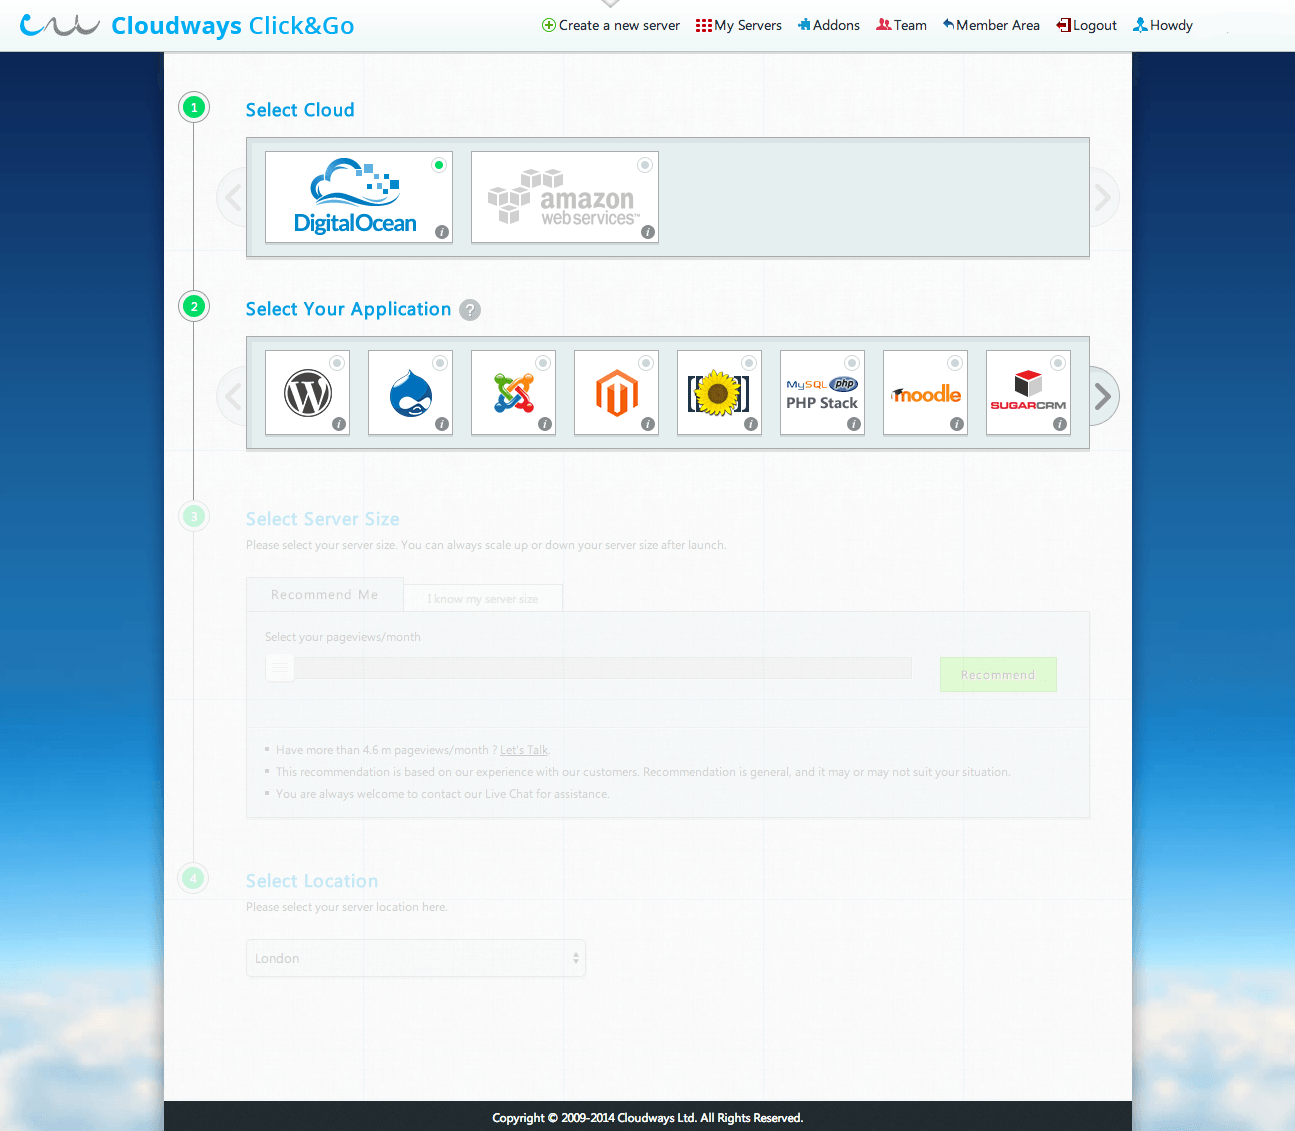 Cloudways: Choose Your Application